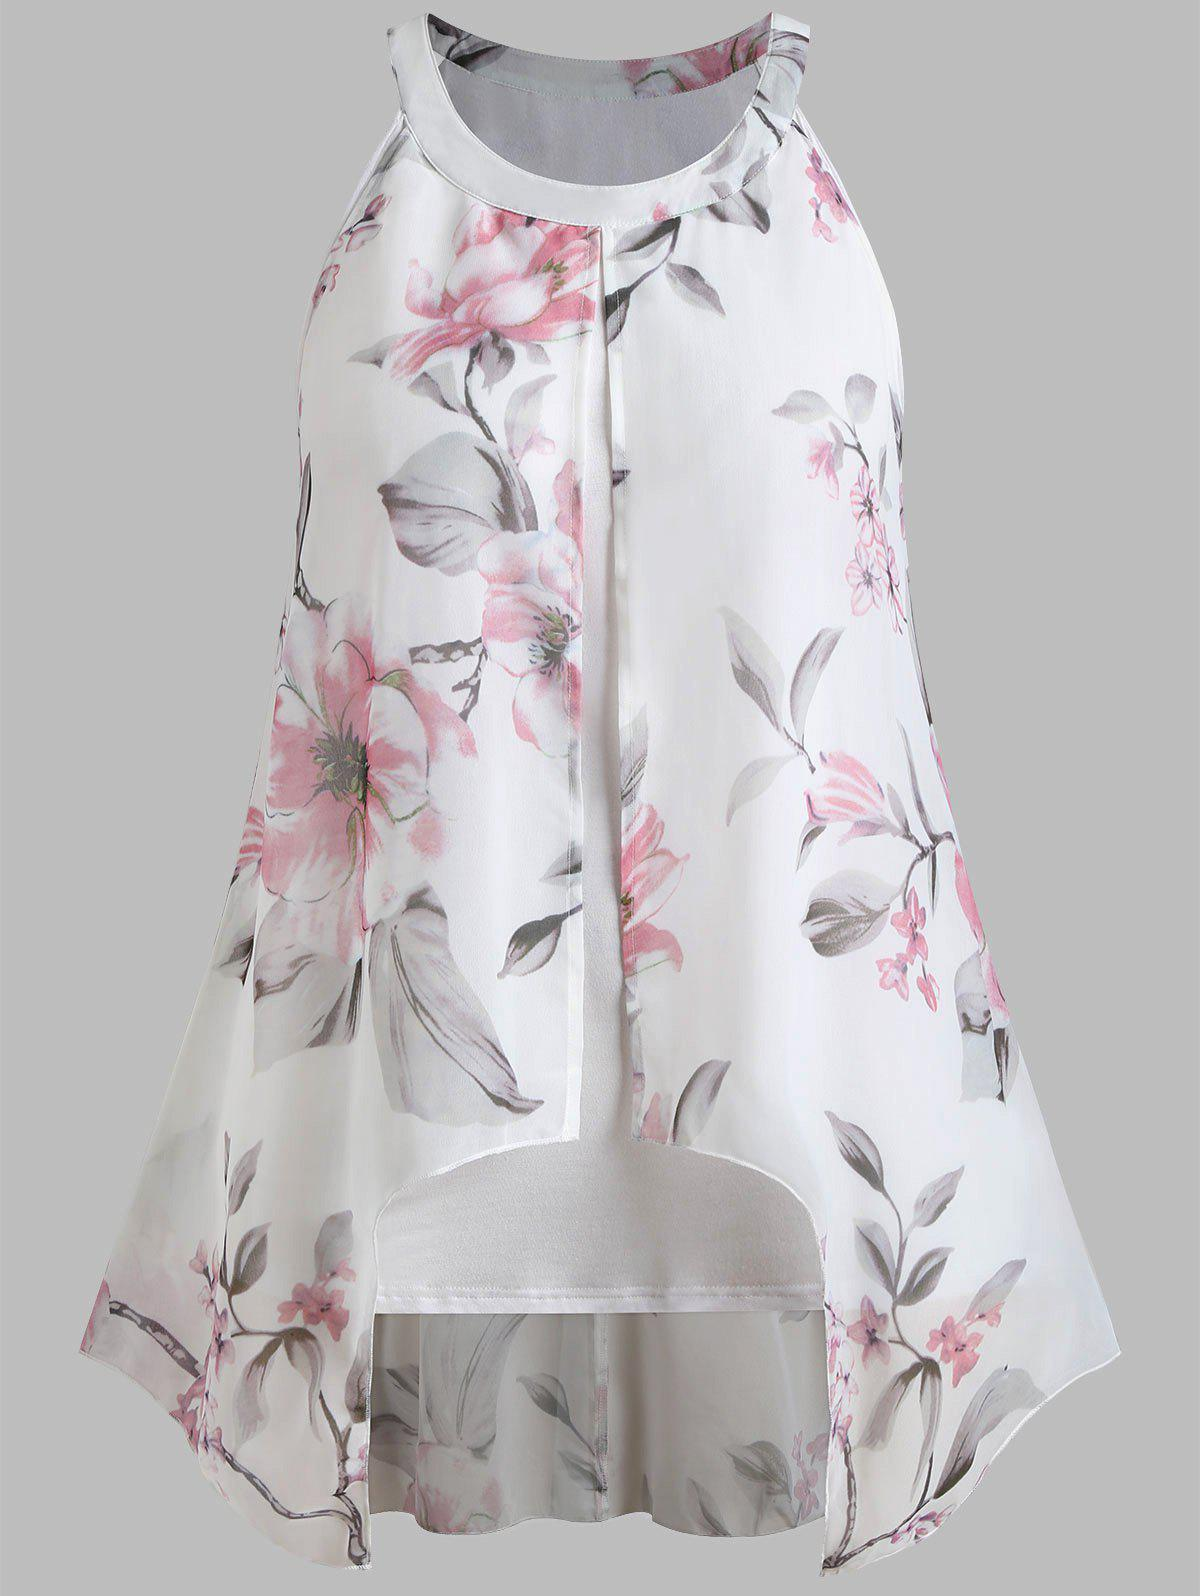 e521e523166 2019 Floral Print Plus Size Sleeveless Chiffon Blouse | Rosegal.com